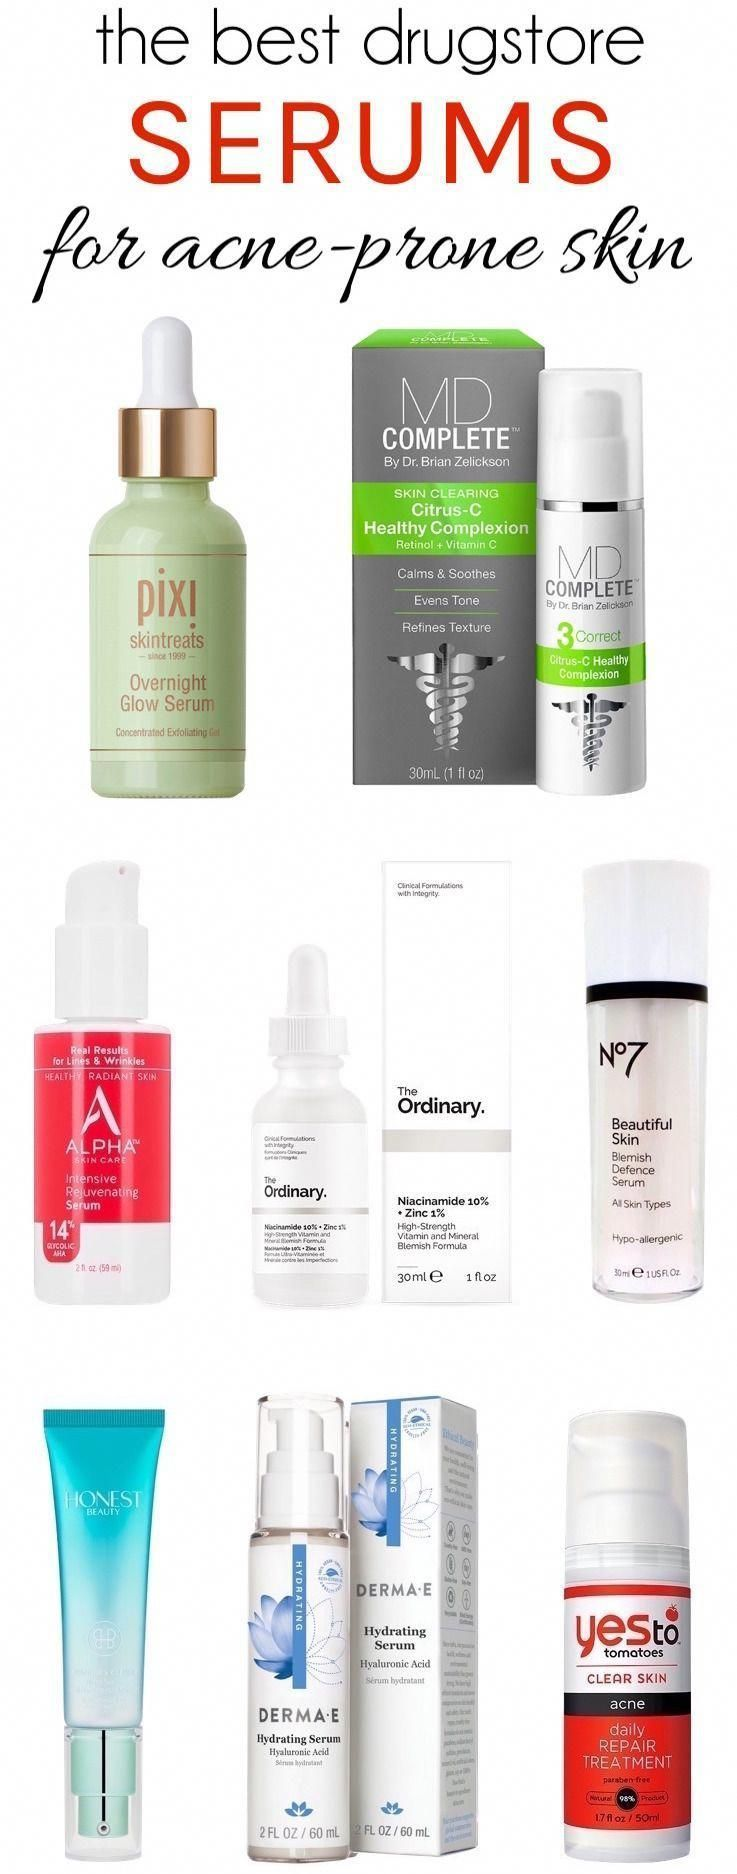 Skin Care Routine 30s Best Drugstore Face Regimen Skin Care Routine For Mid 20s 20190731 In 2020 Acne Skincare Routine Acne Prone Skin Drugstore Skincare Routine